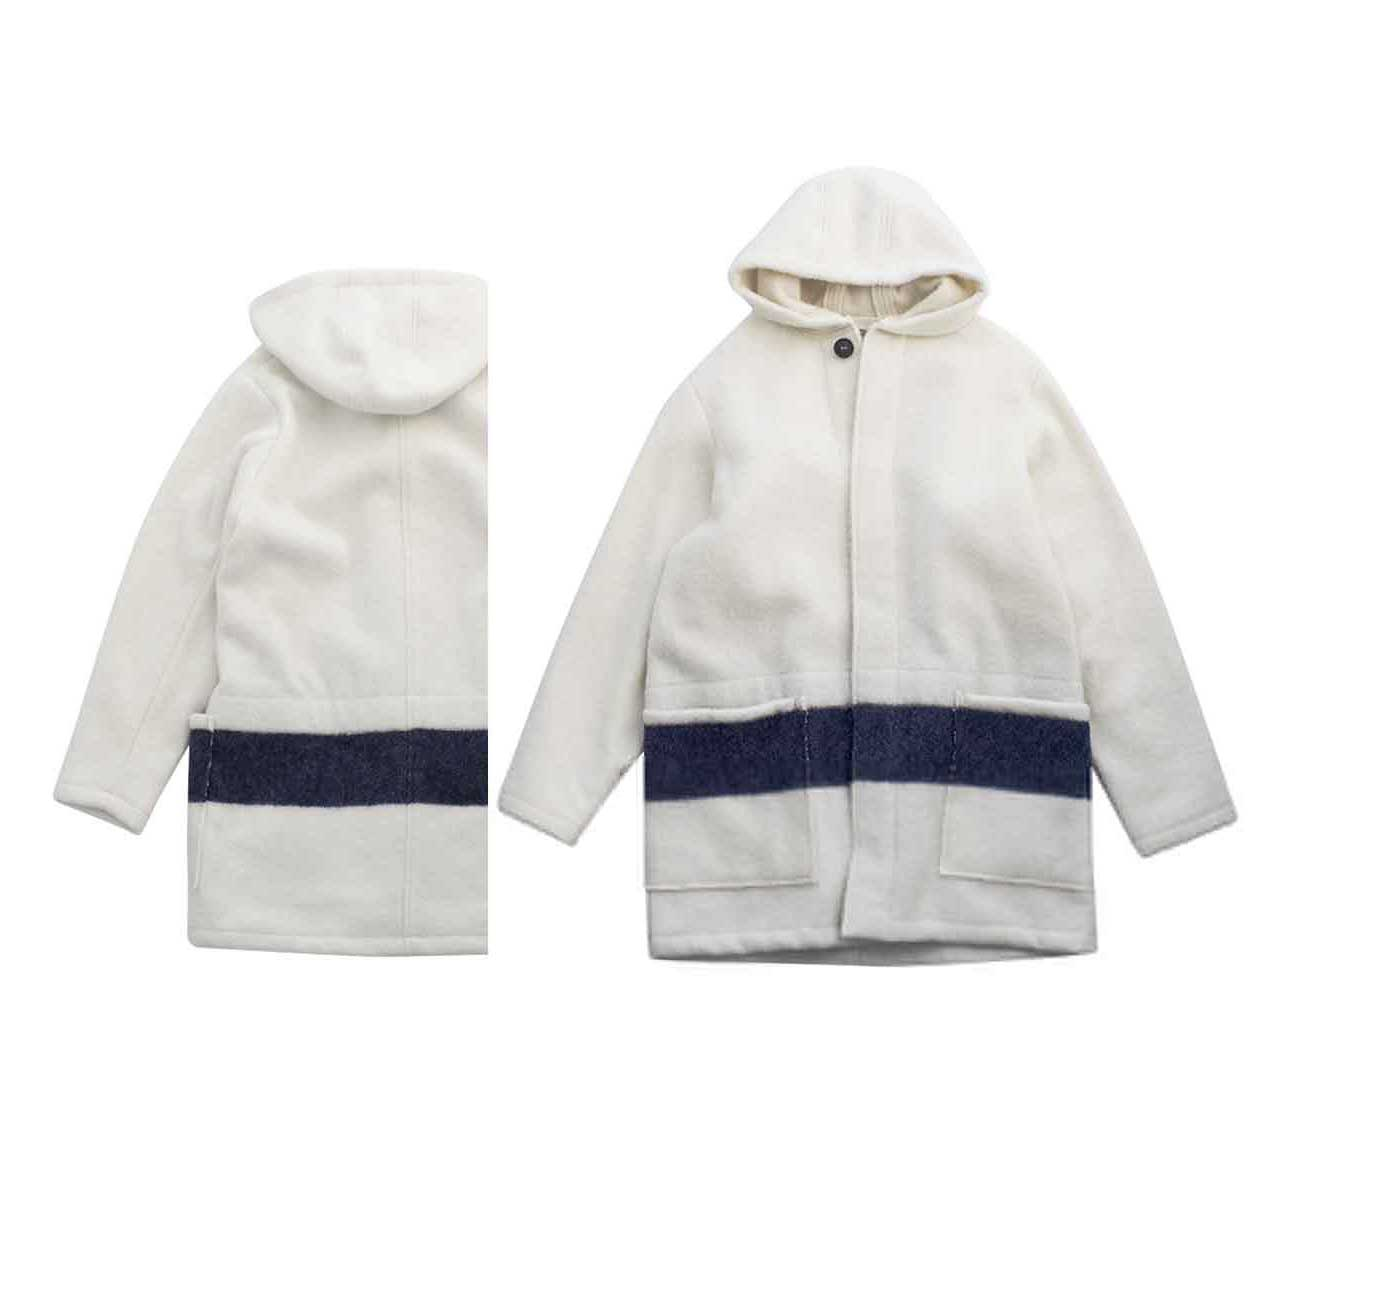 Nigel Cabourn - BLANKET JACKET - WHITE×NAVY